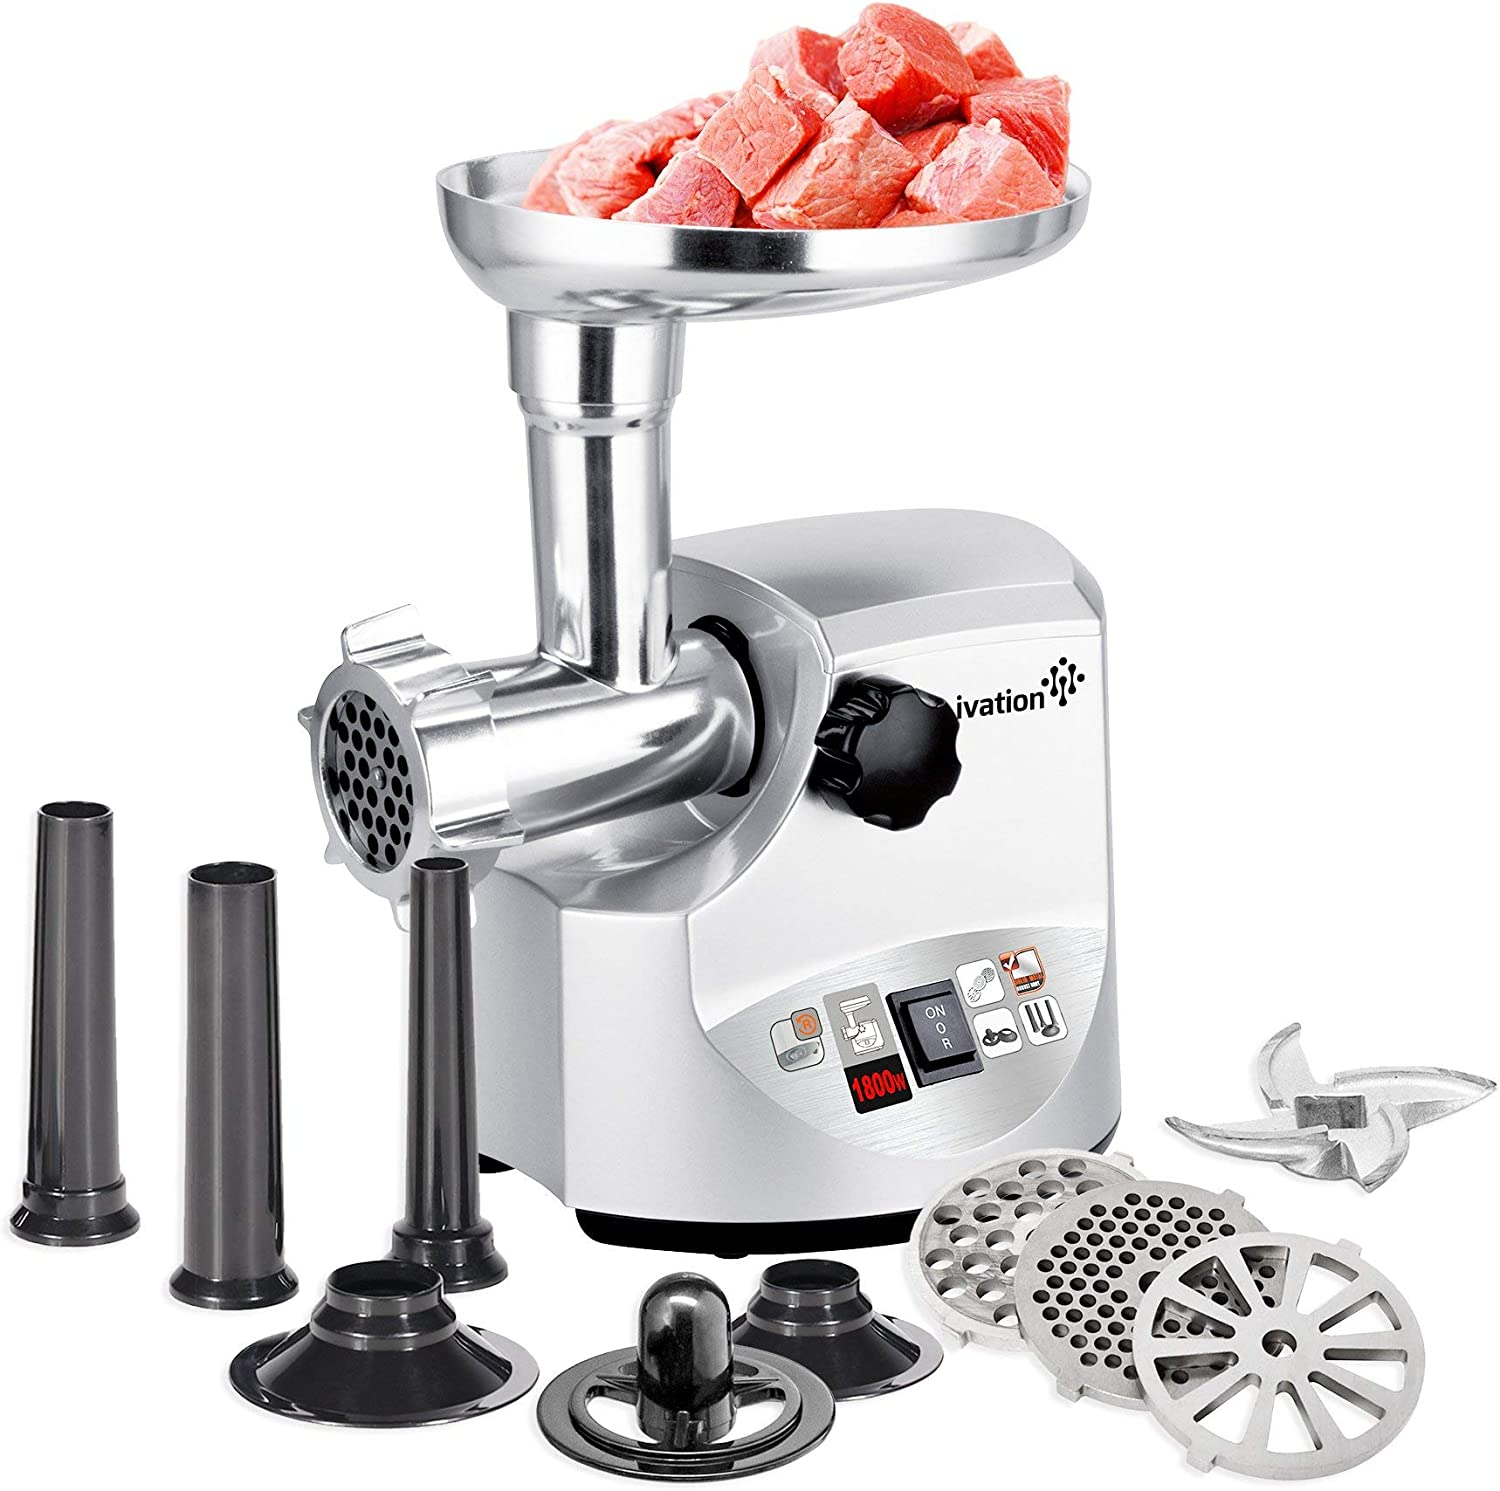 Ivation 2.5hp Electric Meat Grinder Mincer 1800 Watt, Sausage Stuffer – Heavy Duty – 3 Stainless Steel Cutting Blades, Sausage Stuffing Tubes Kibbe Attachment – ETL Certified